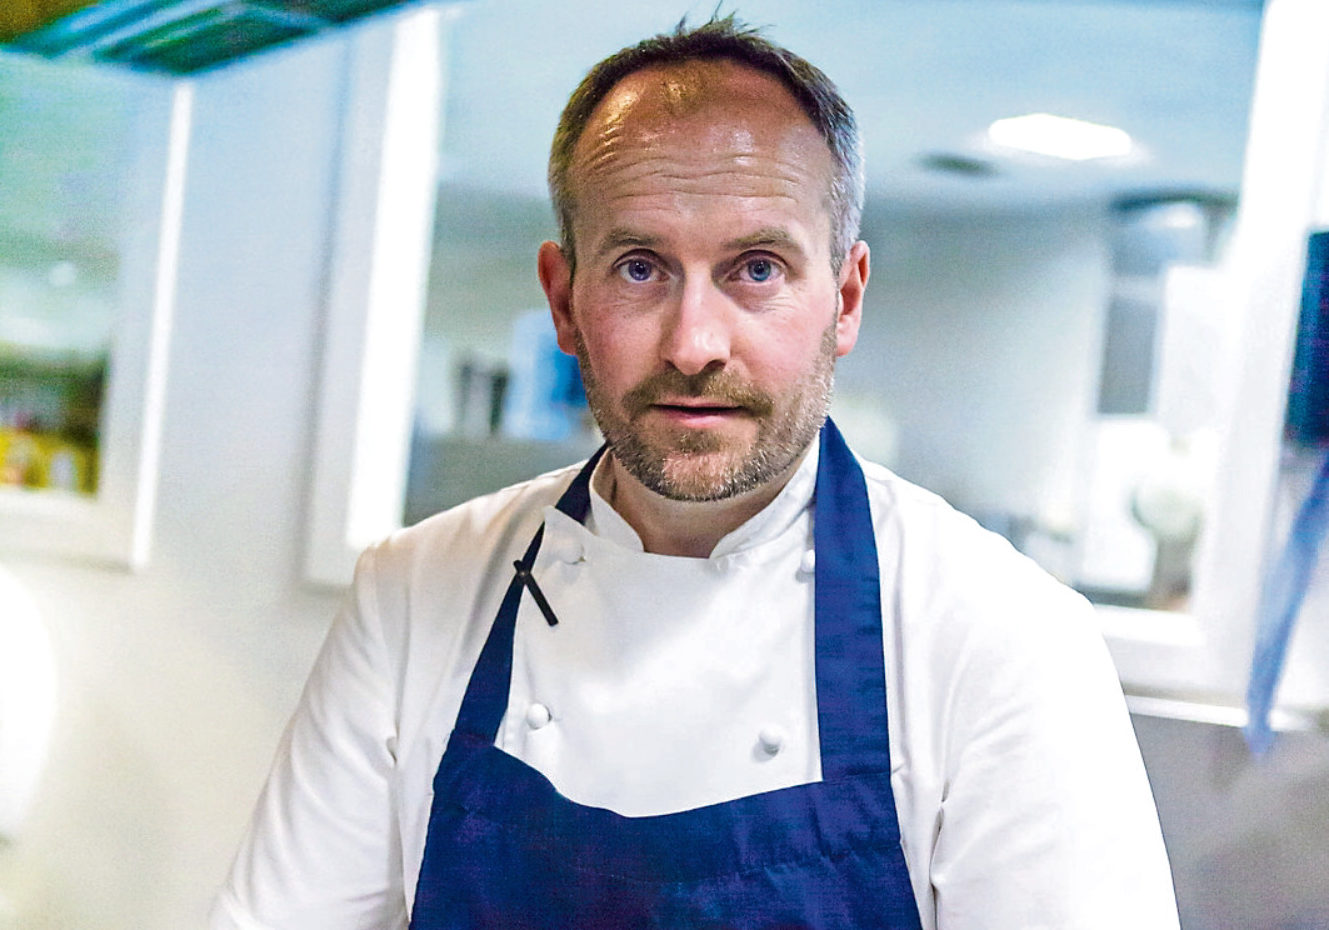 Stephen McLaughlin. Head chef at Andrew Fairlie restaurant at the Gleneagles Hotel.